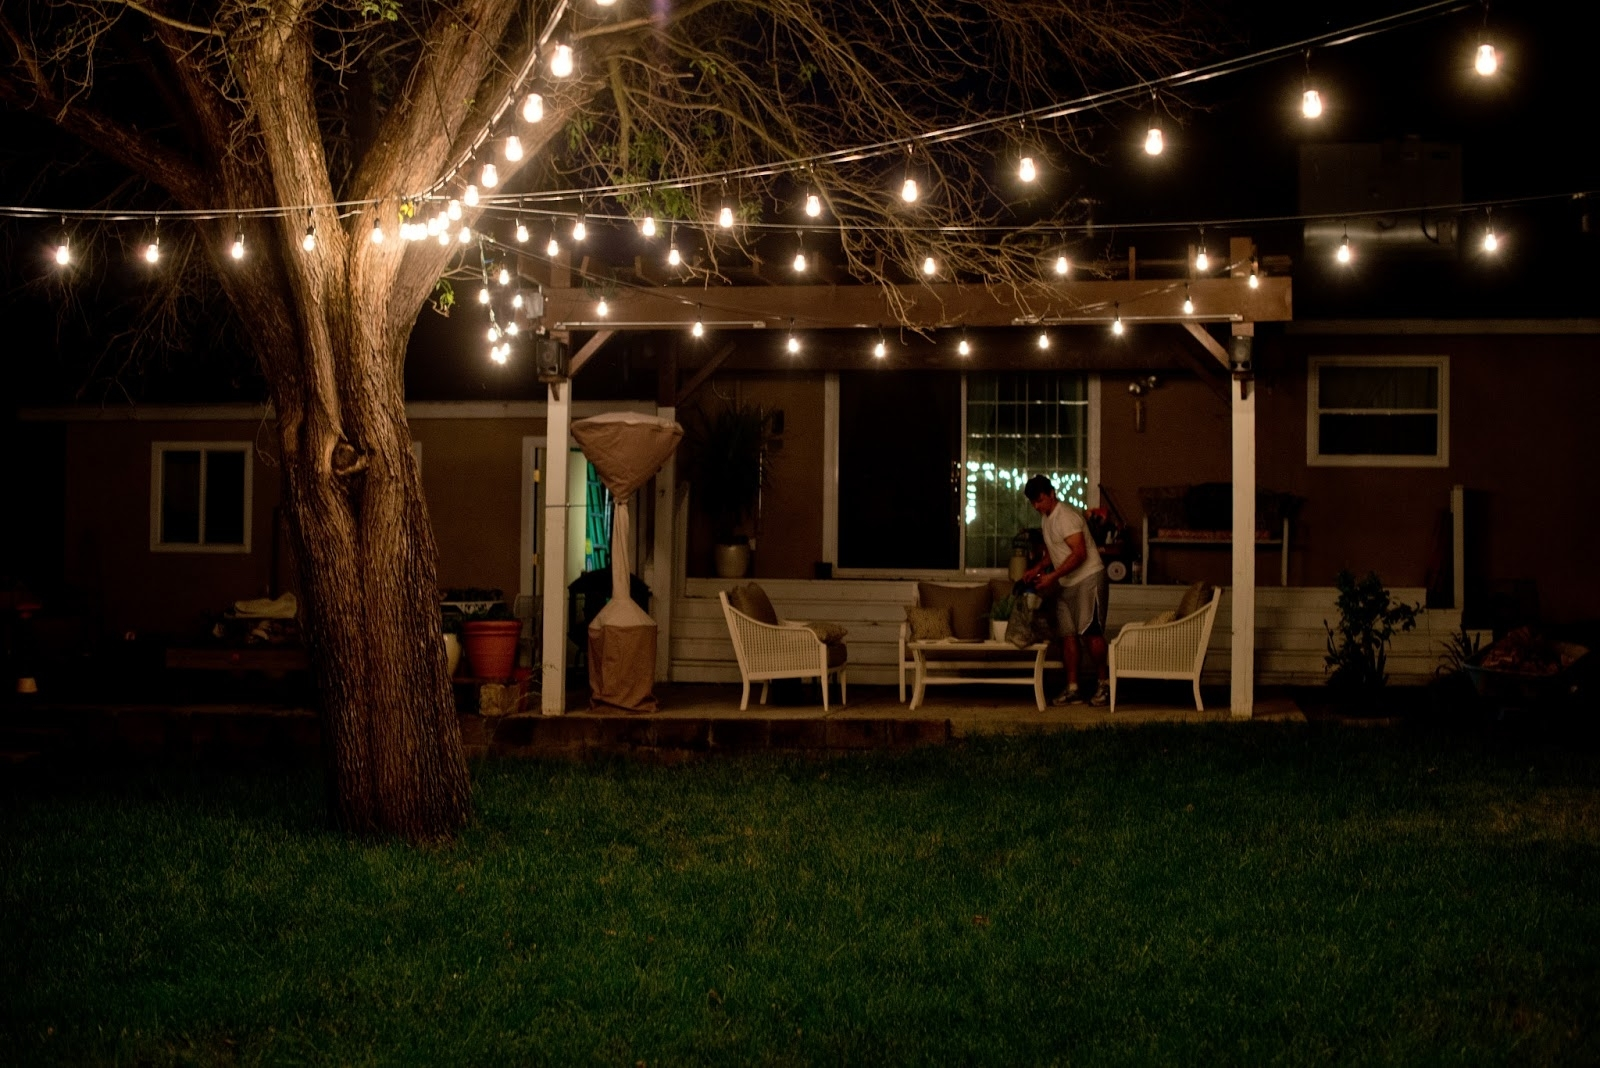 Lighting: Pretty Outdoor Hanging Lights For Outdoor Lighting Design In Well Known Vintage Outdoor Hanging Lights (View 4 of 20)